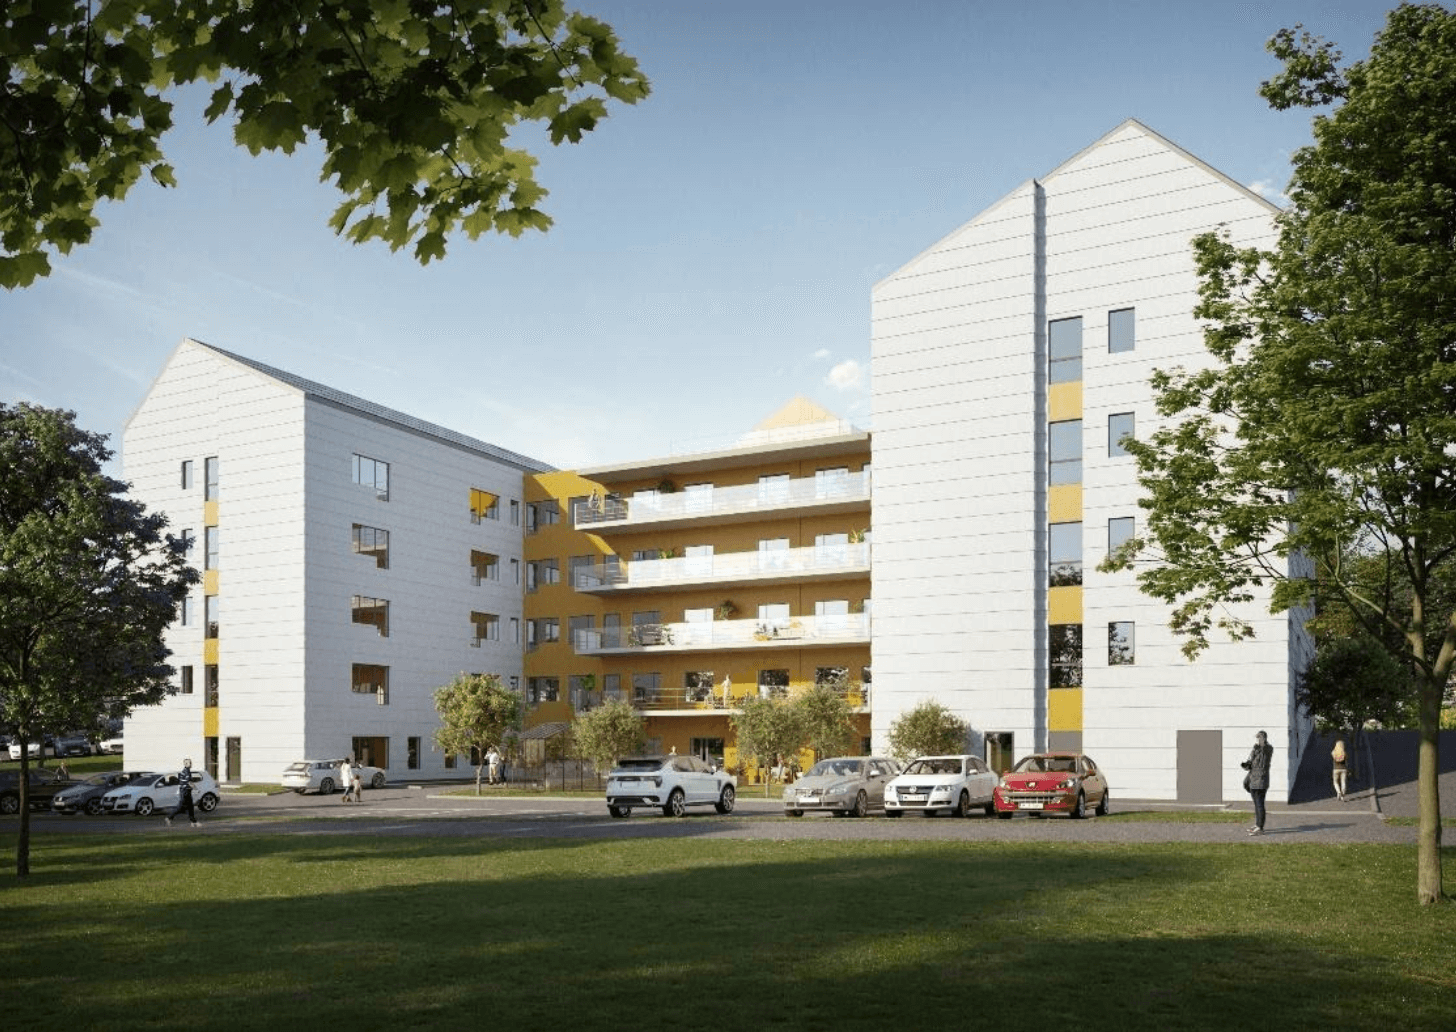 Skanska's experiences of Bimeye in project Villa Brogården